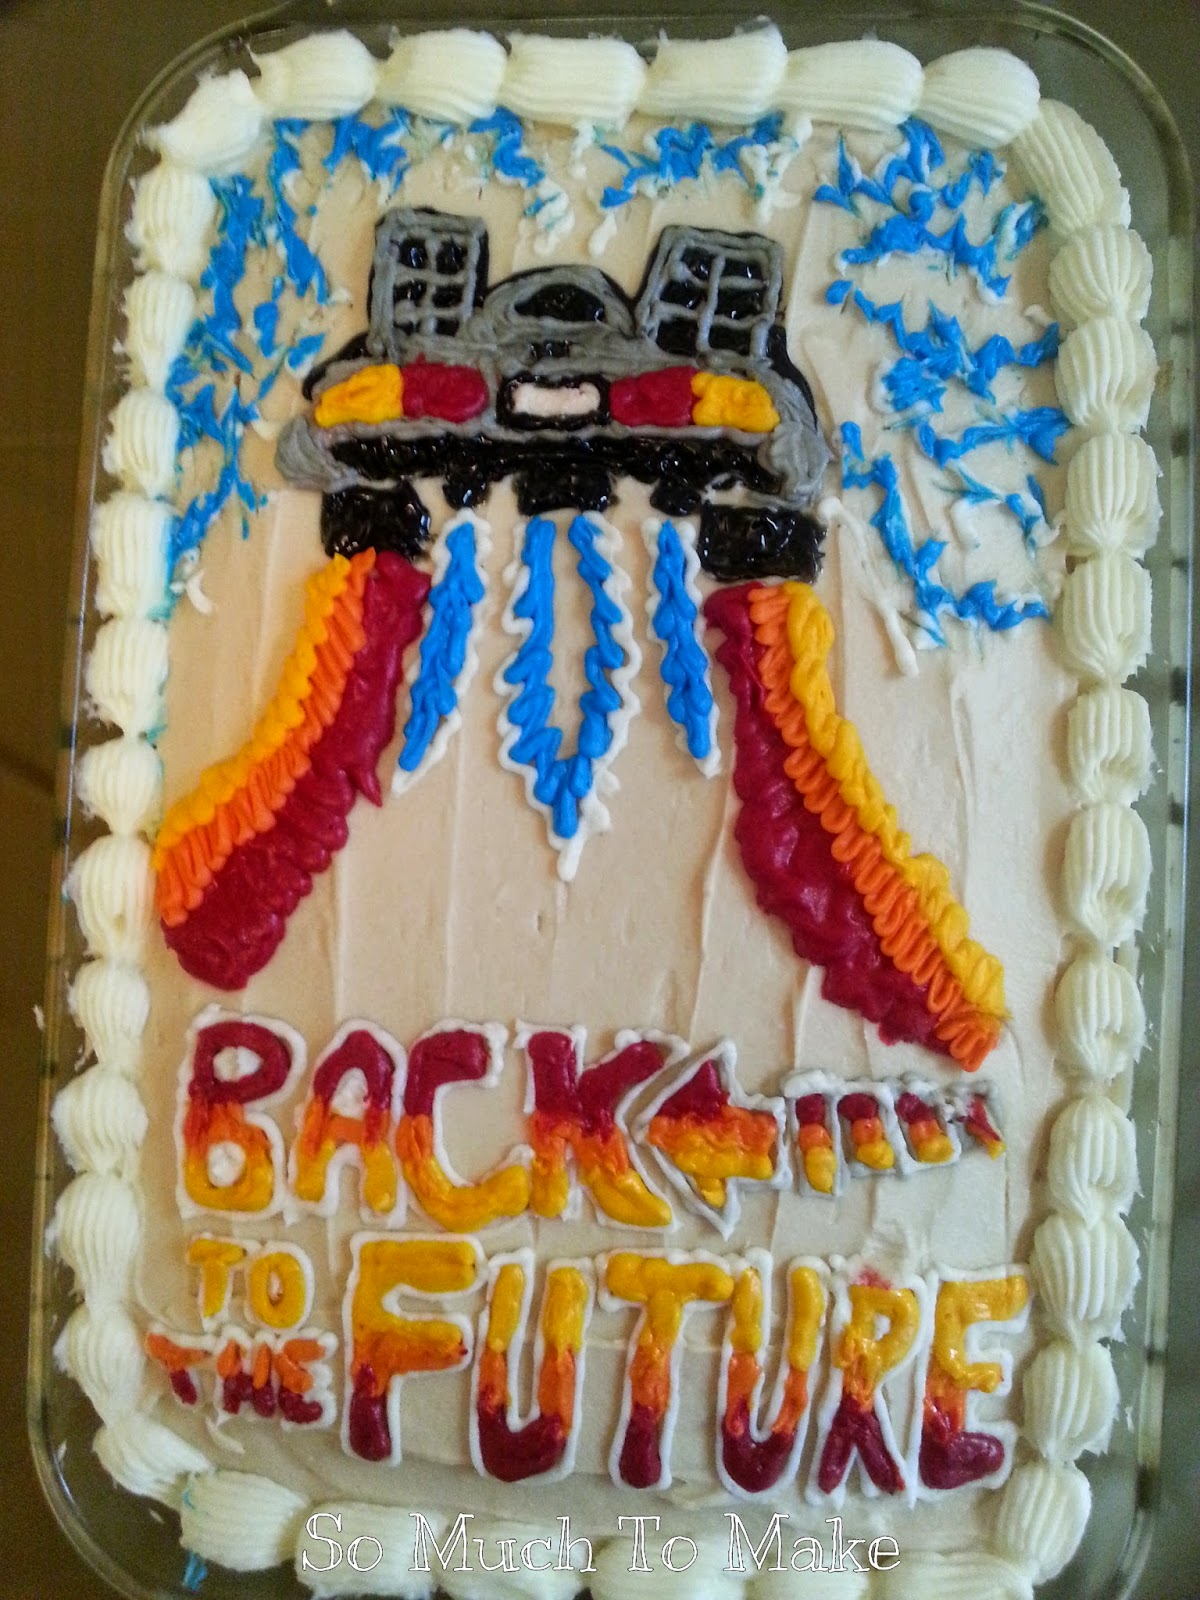 Back To the Future Cake, Decor, Decorations, Party, Food